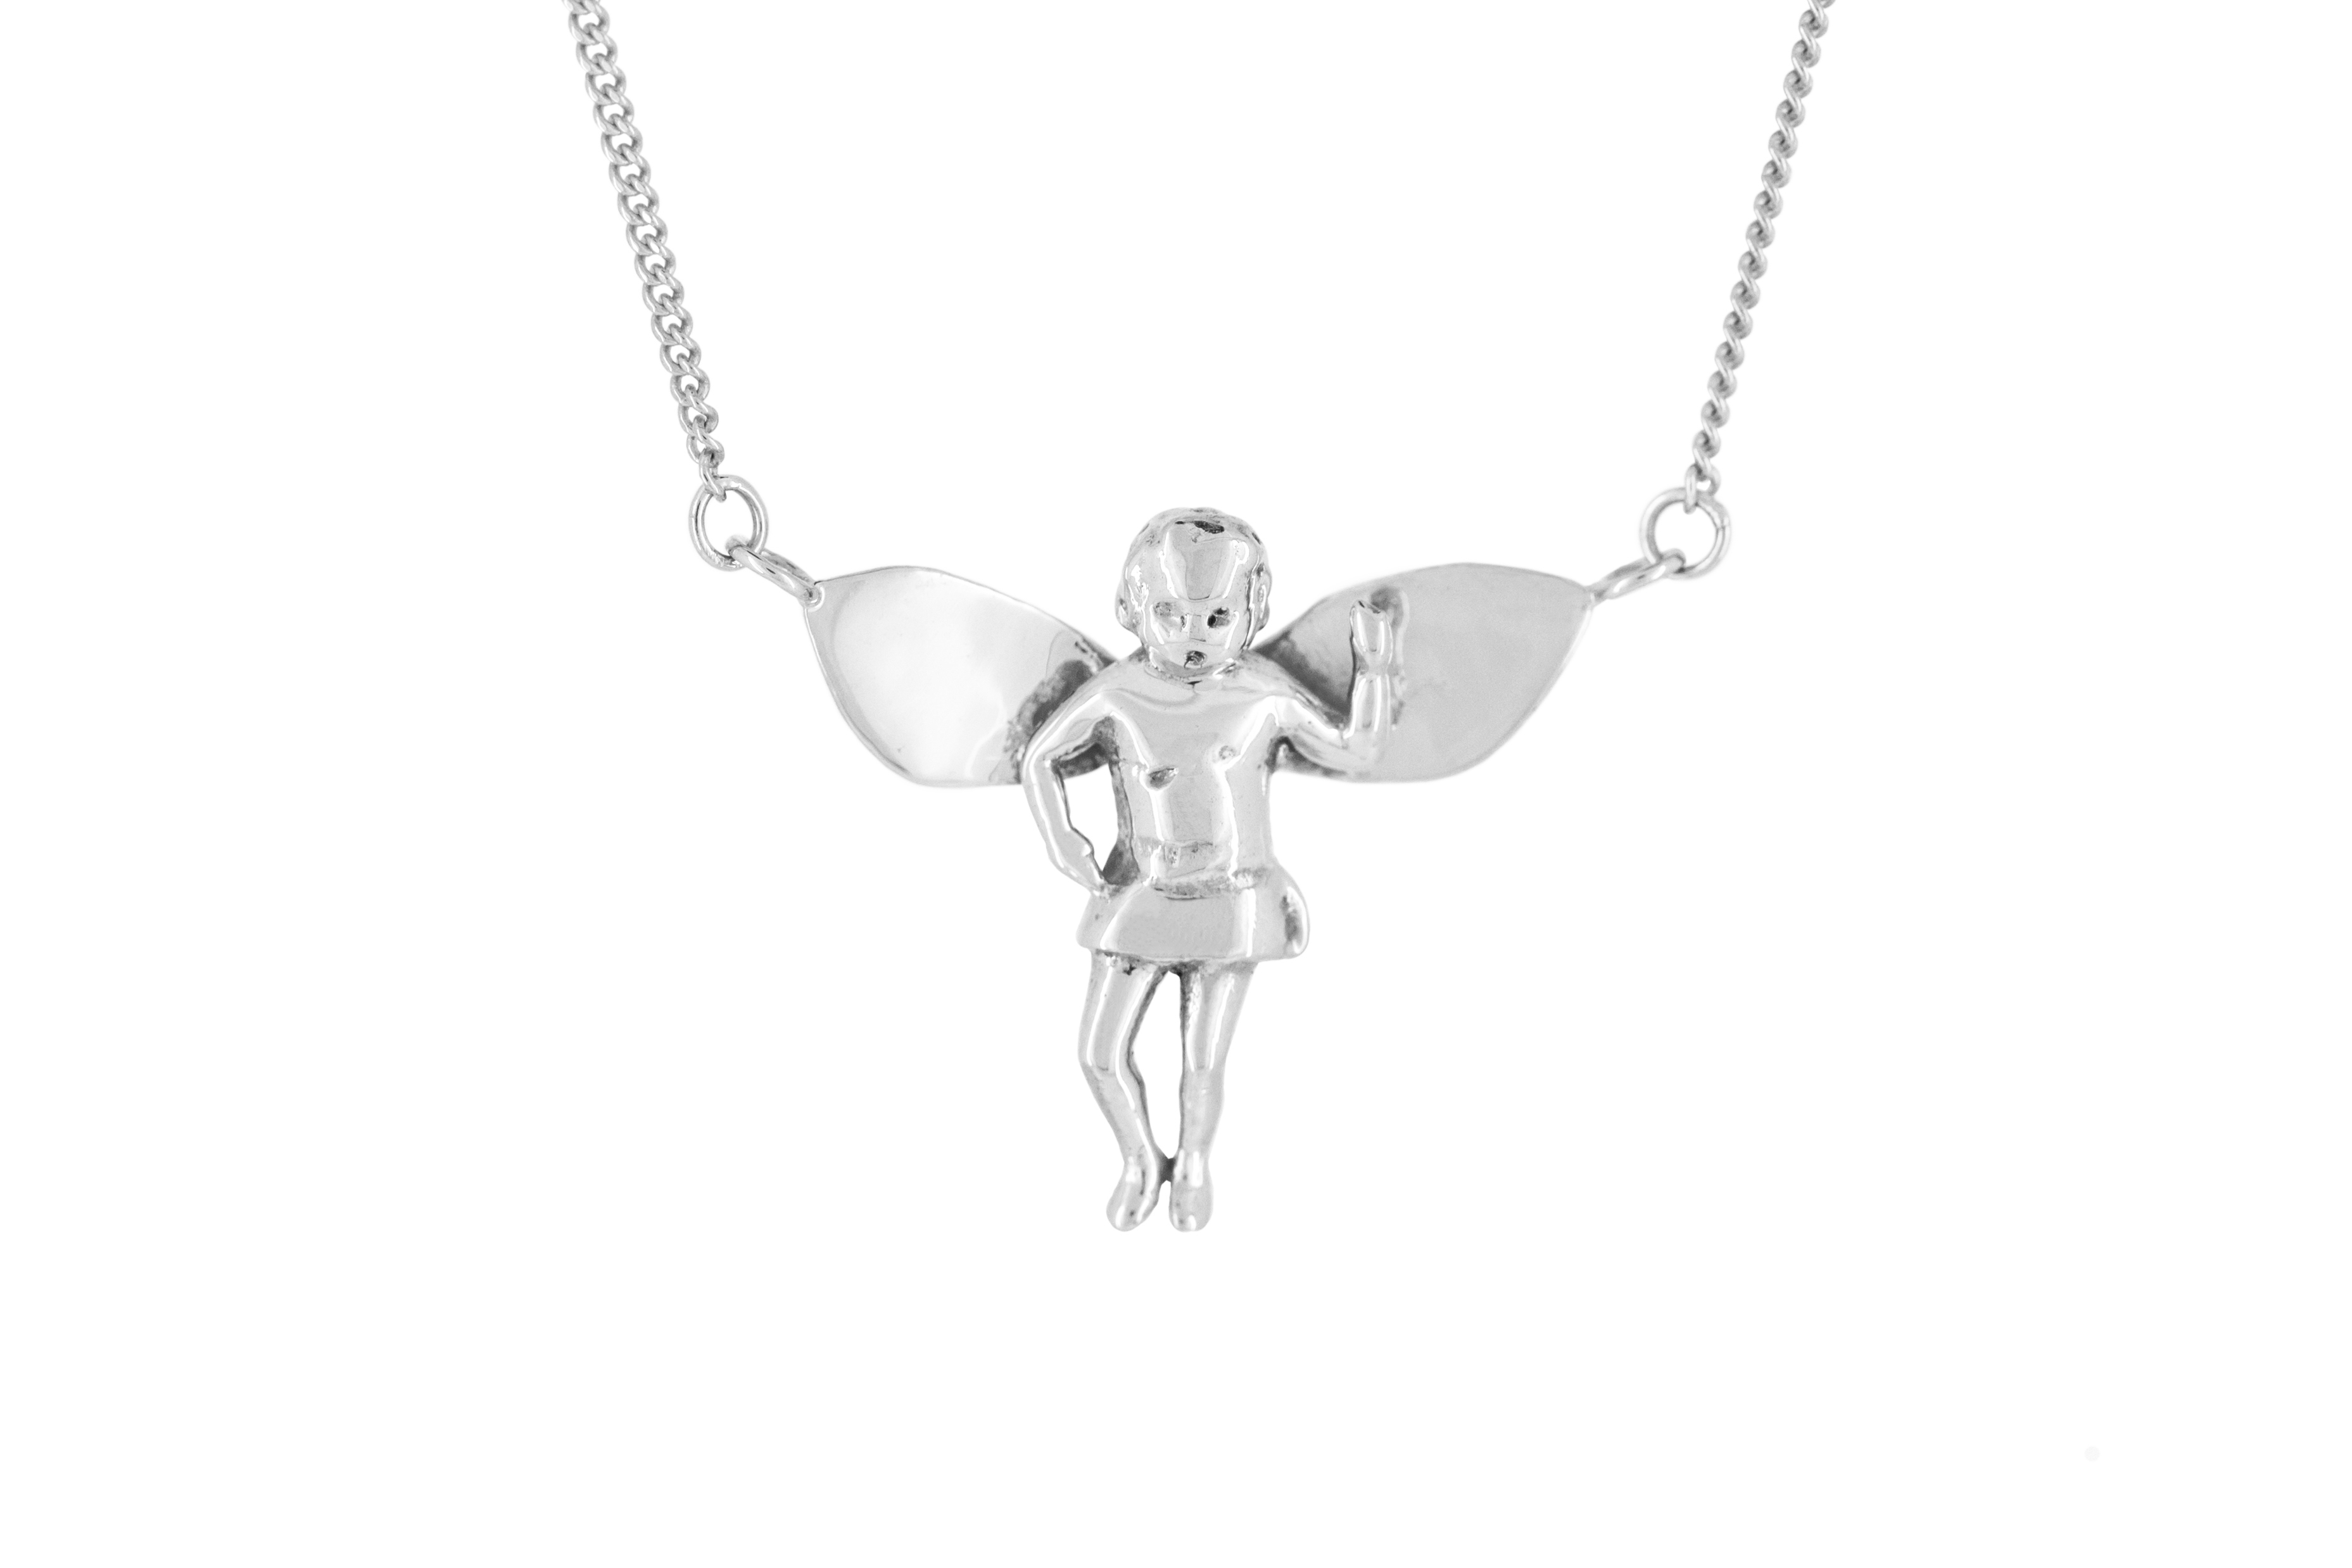 Baby Angel Necklace in 9ct White Gold